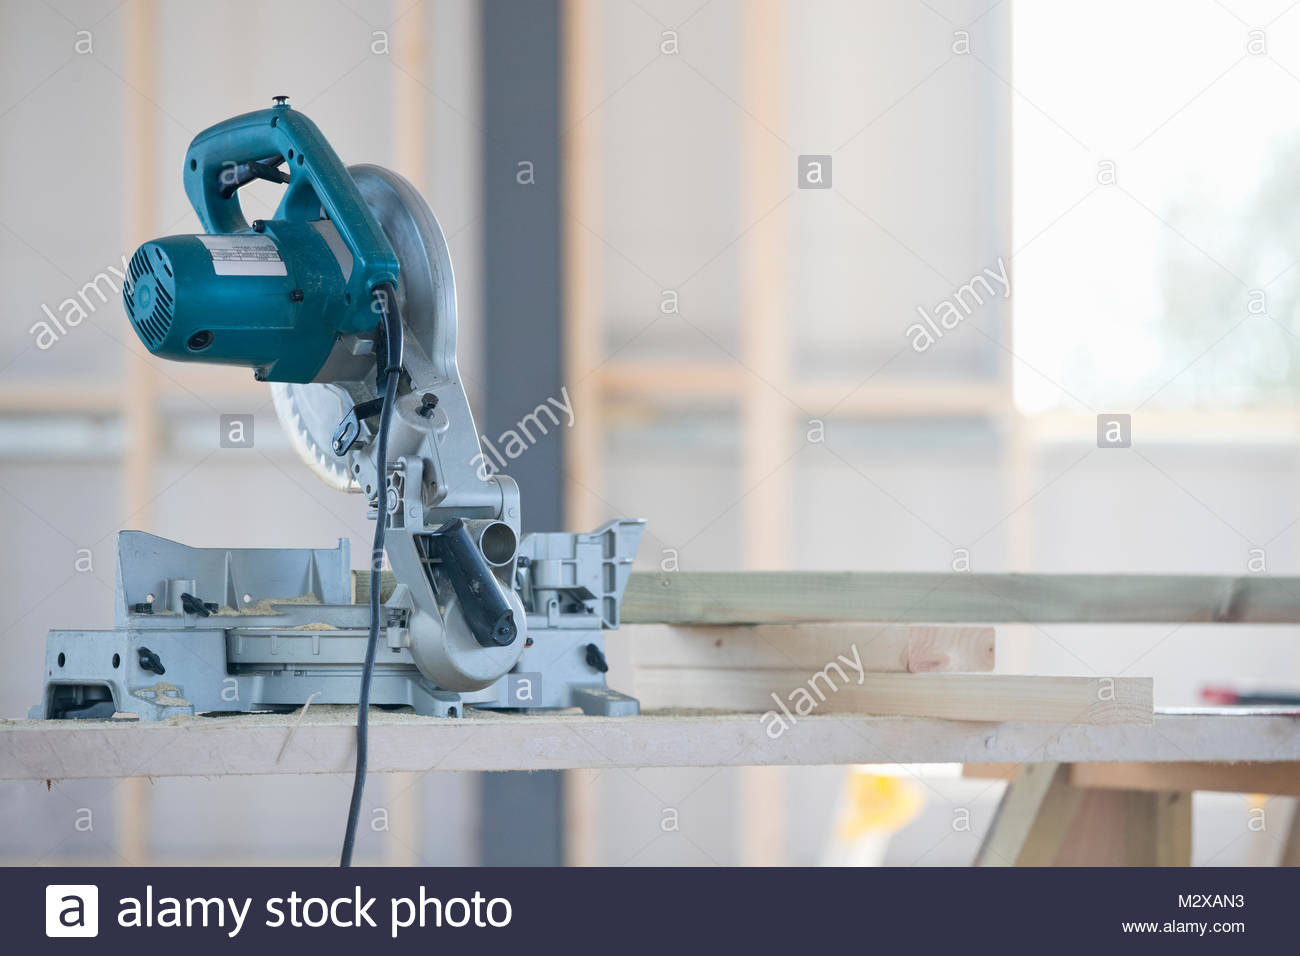 Circular power saw tool in construction site interior - Stock Image